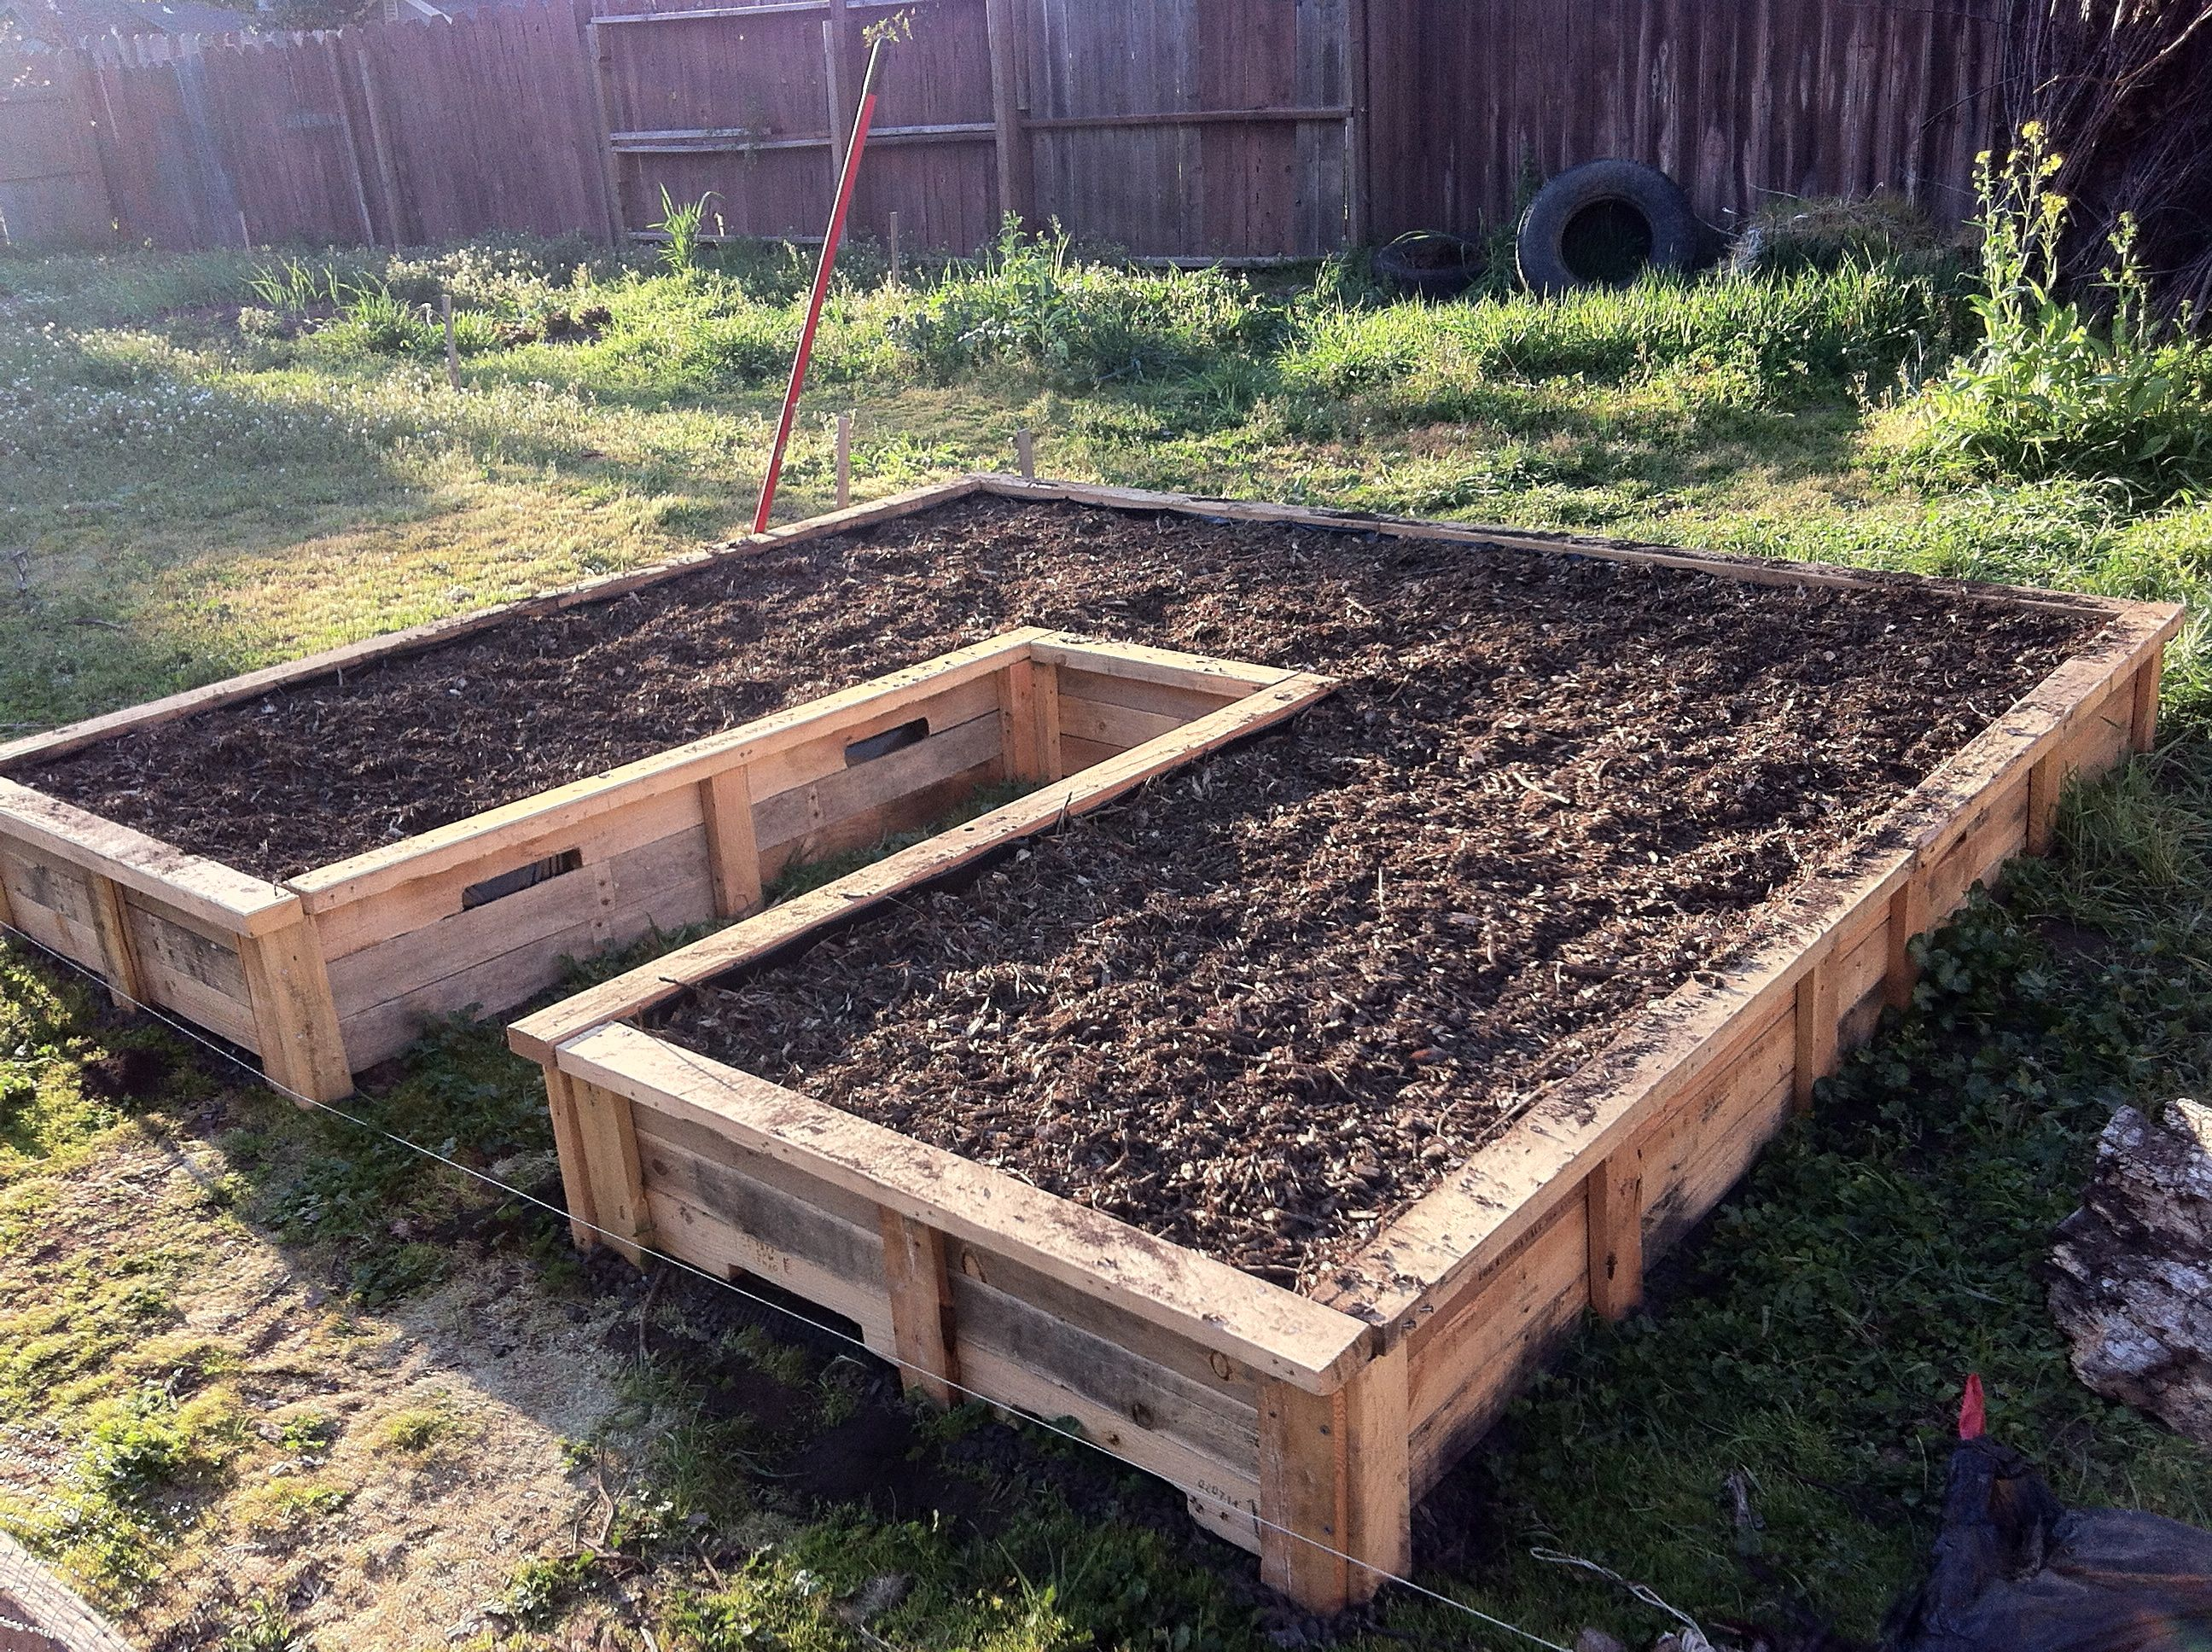 10 x 10 keyhole raised bed made from shipping pallets 25 garden - Garden Ideas With Pallets